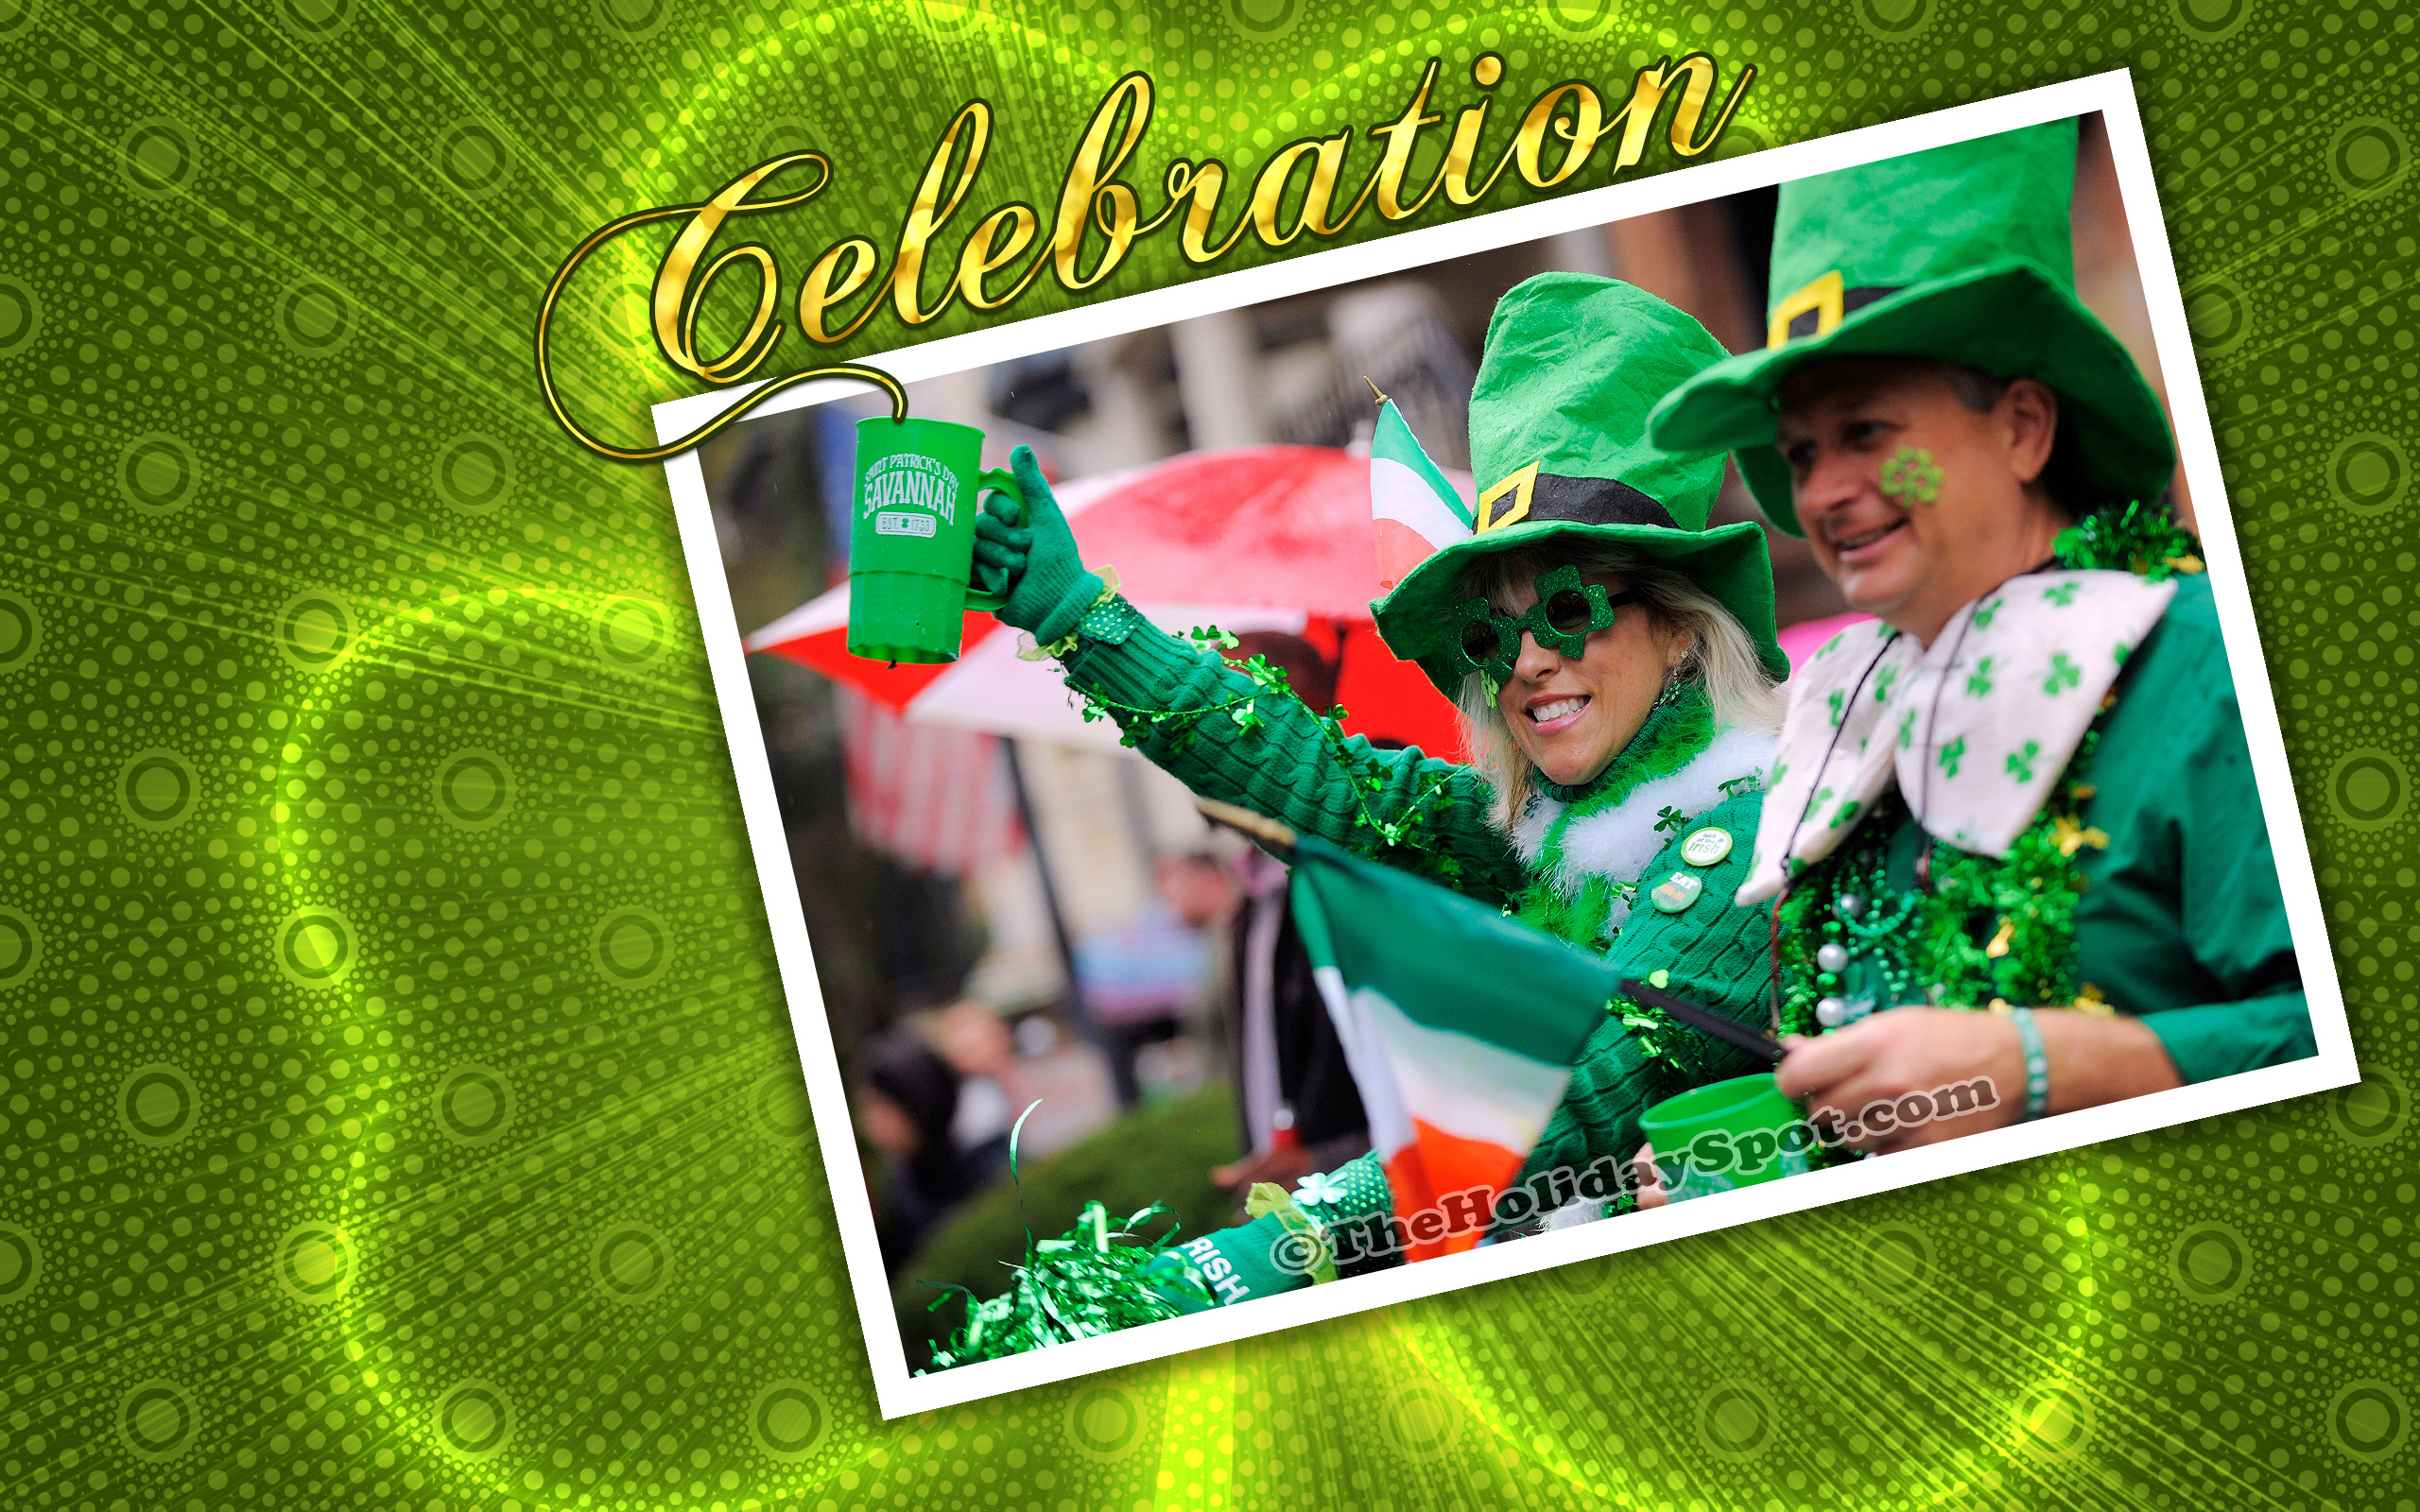 A High Quality St Patricks Day Wallpaper Featuring Two Women Cheering On Pattys